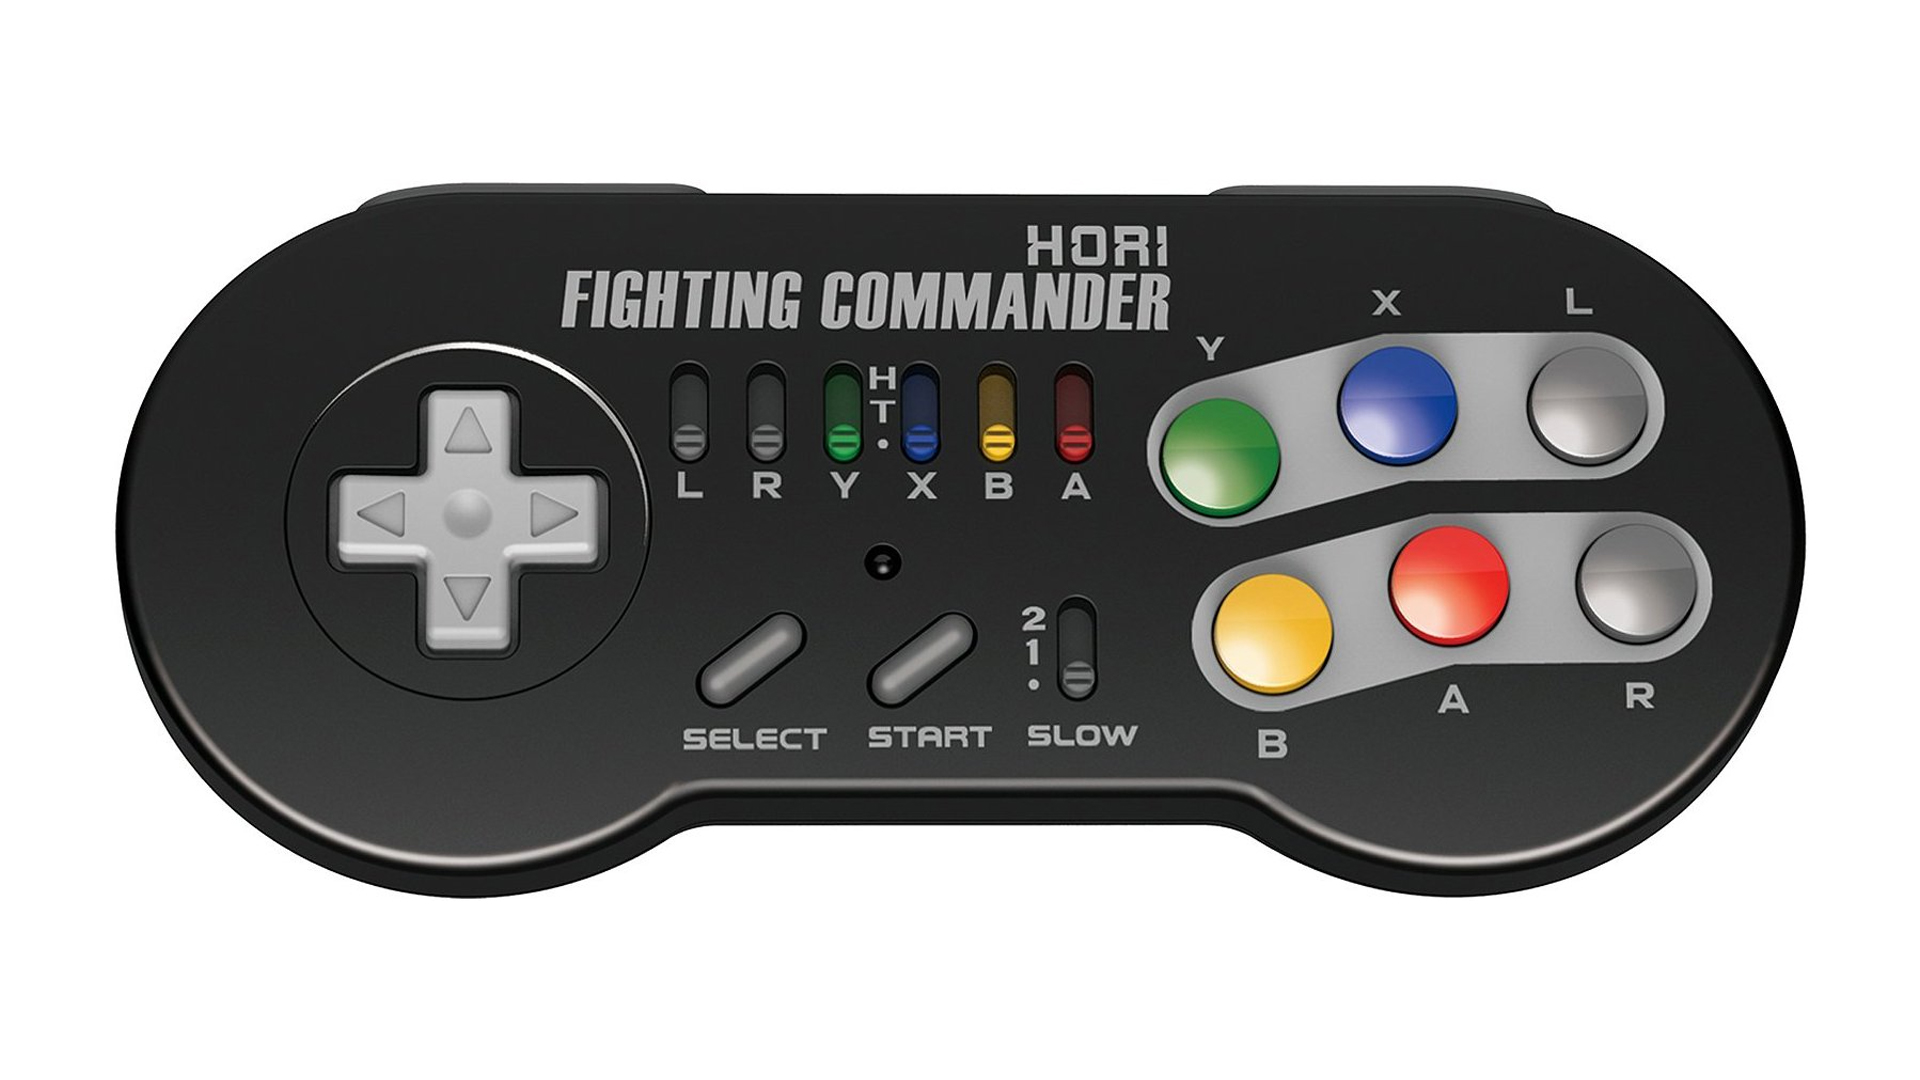 Hori S Fighting Commander Controller Is Out This Week Available